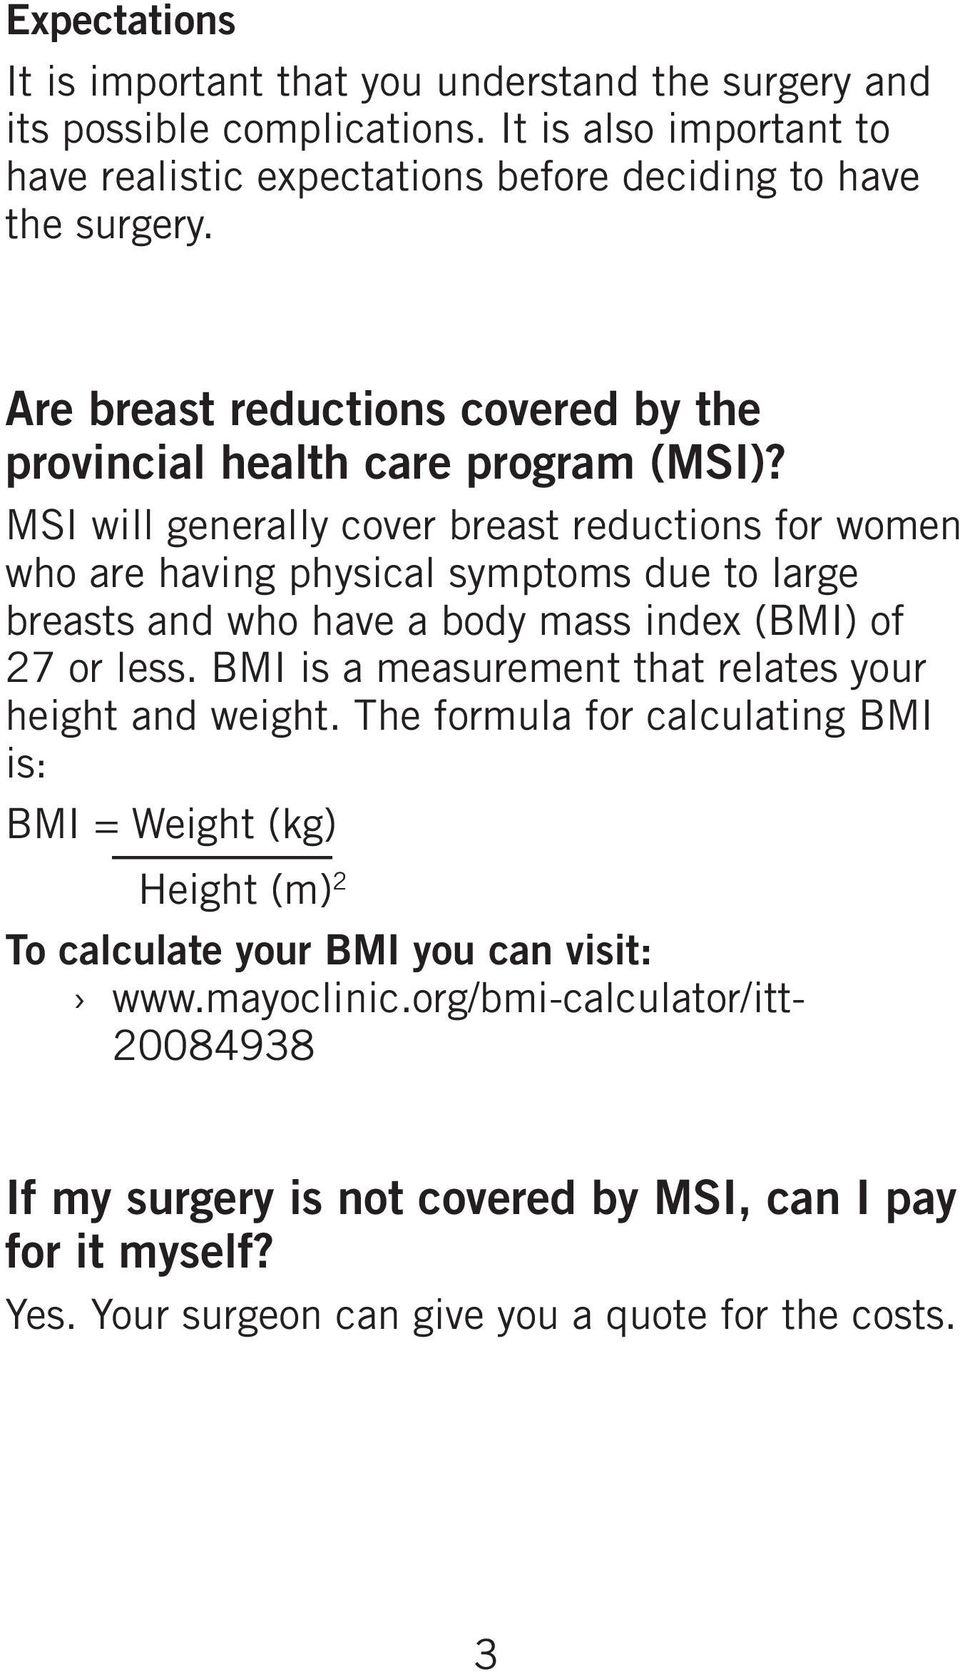 MSI will generally cover breast reductions for women who are having physical symptoms due to large breasts and who have a body mass index (BMI) of 27 or less.